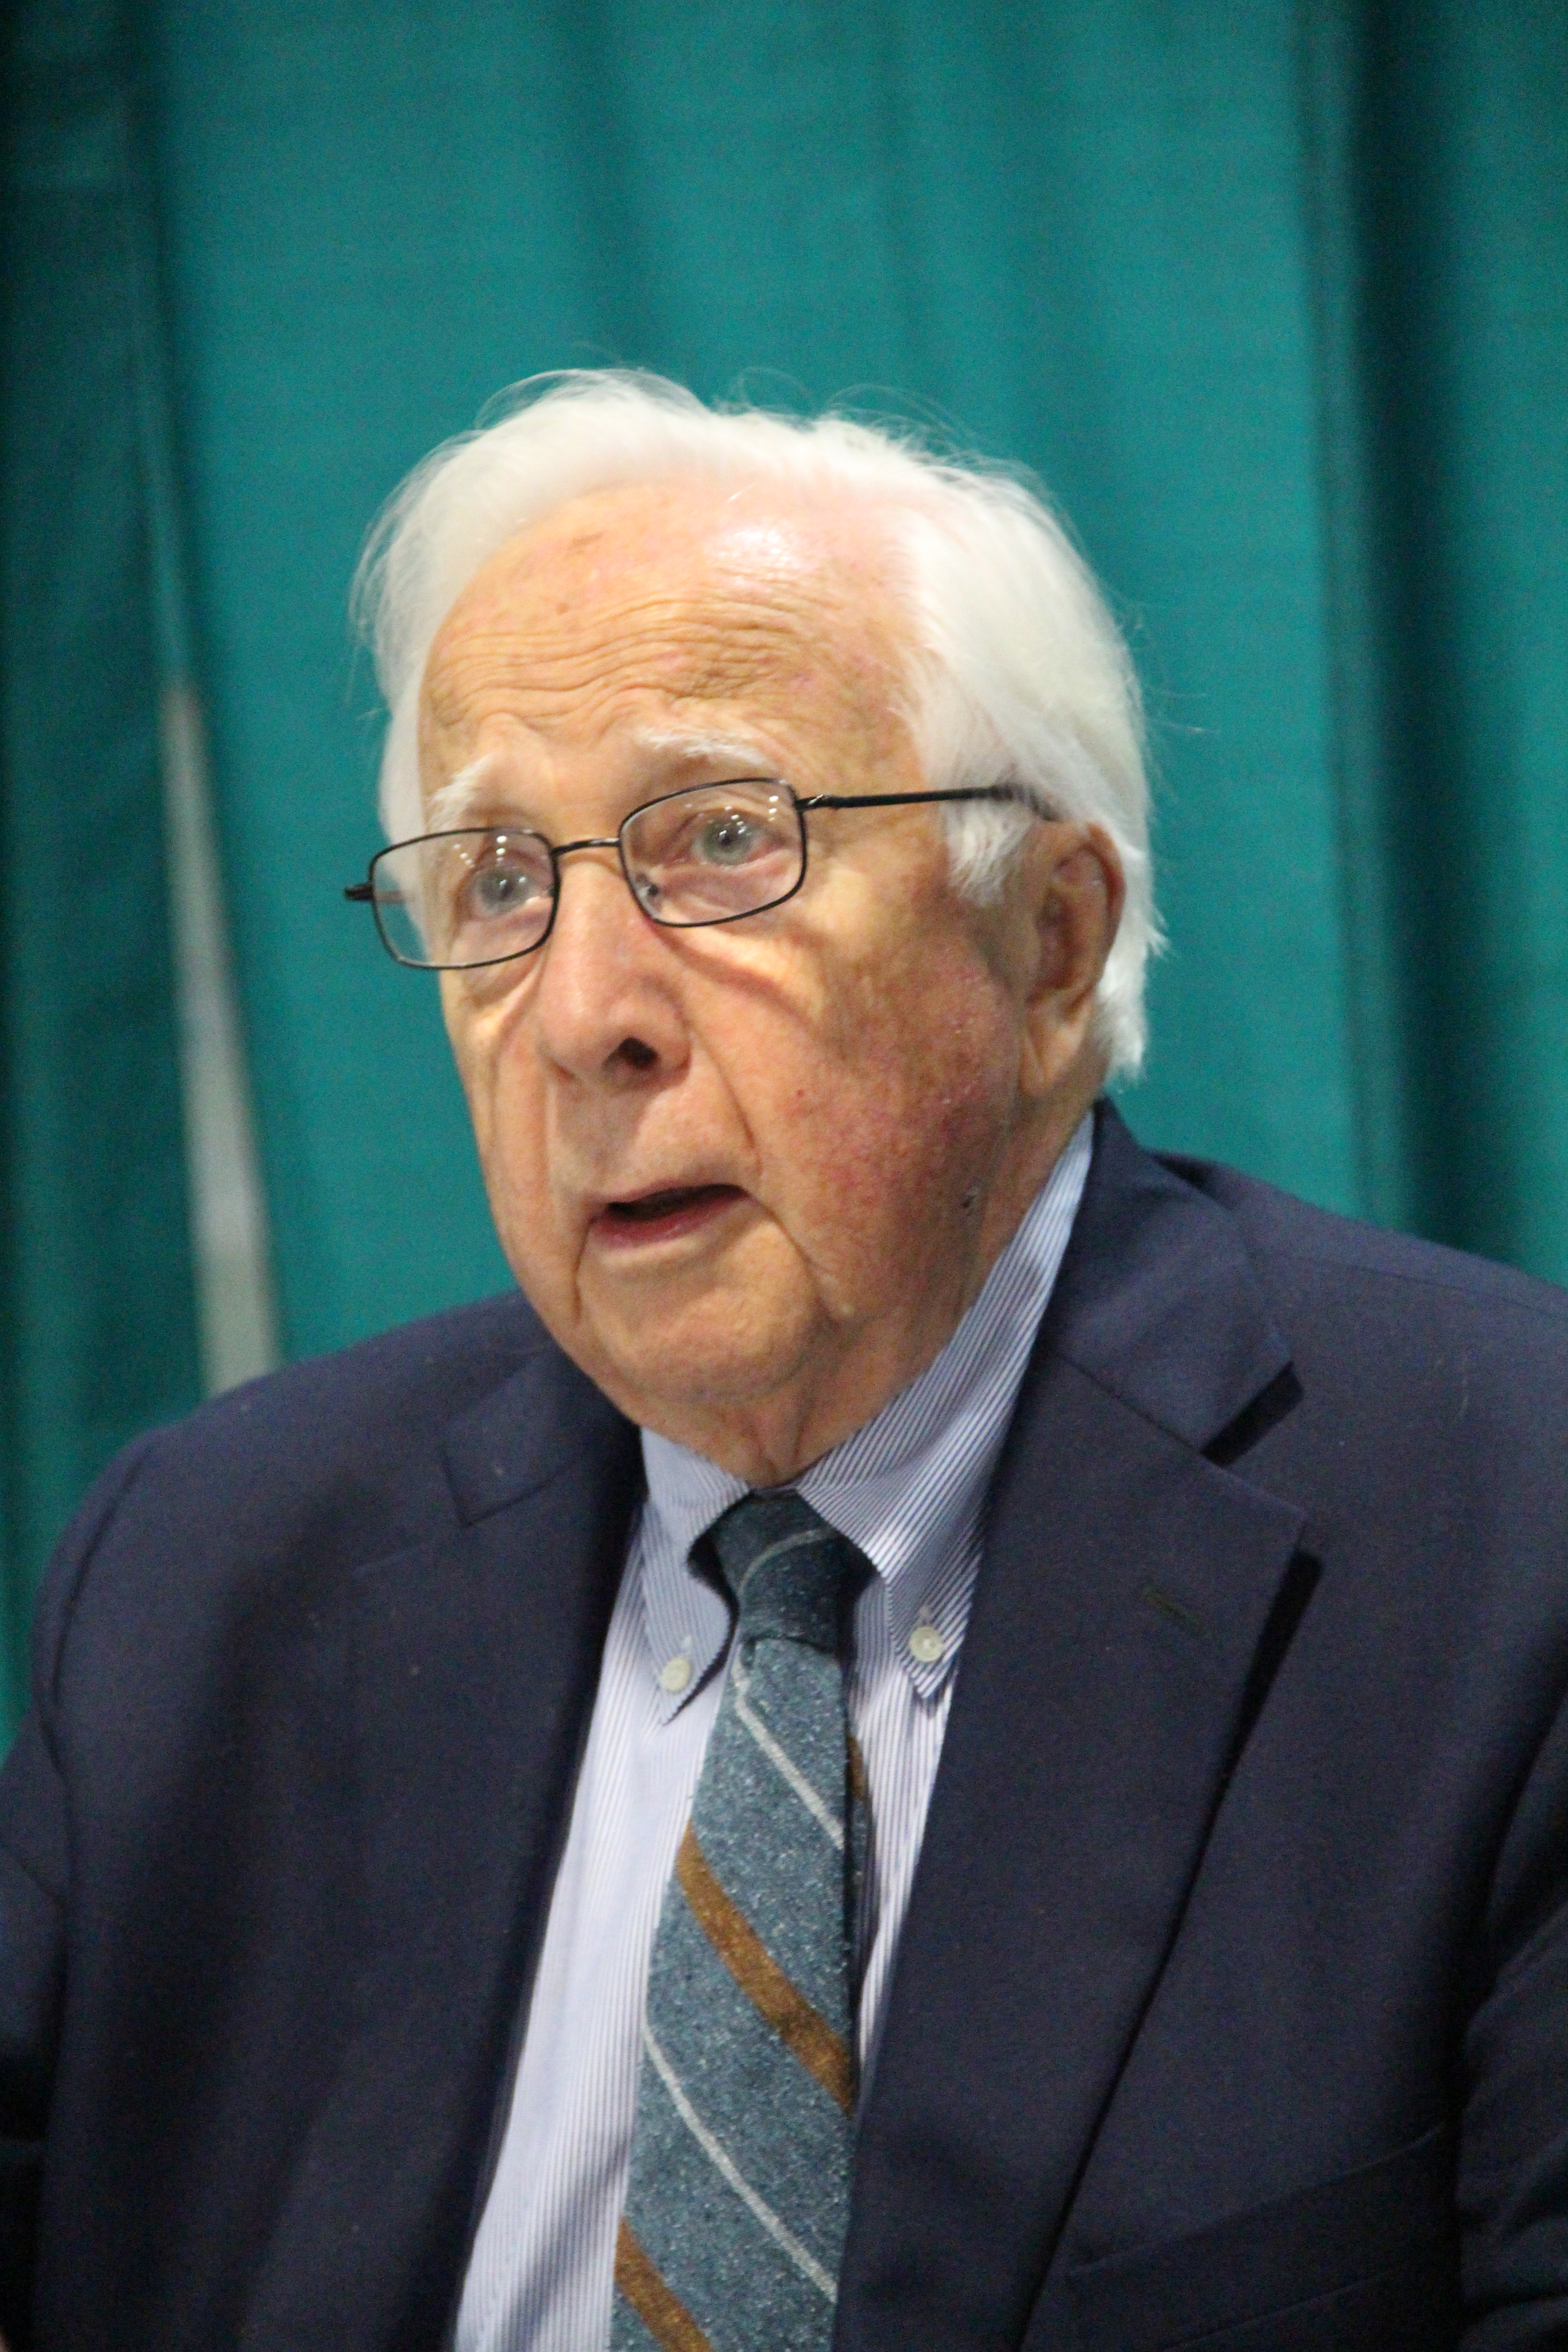 David McCullough at the [[National Book Festival]] in [[Washington, D.C.]] (2015)